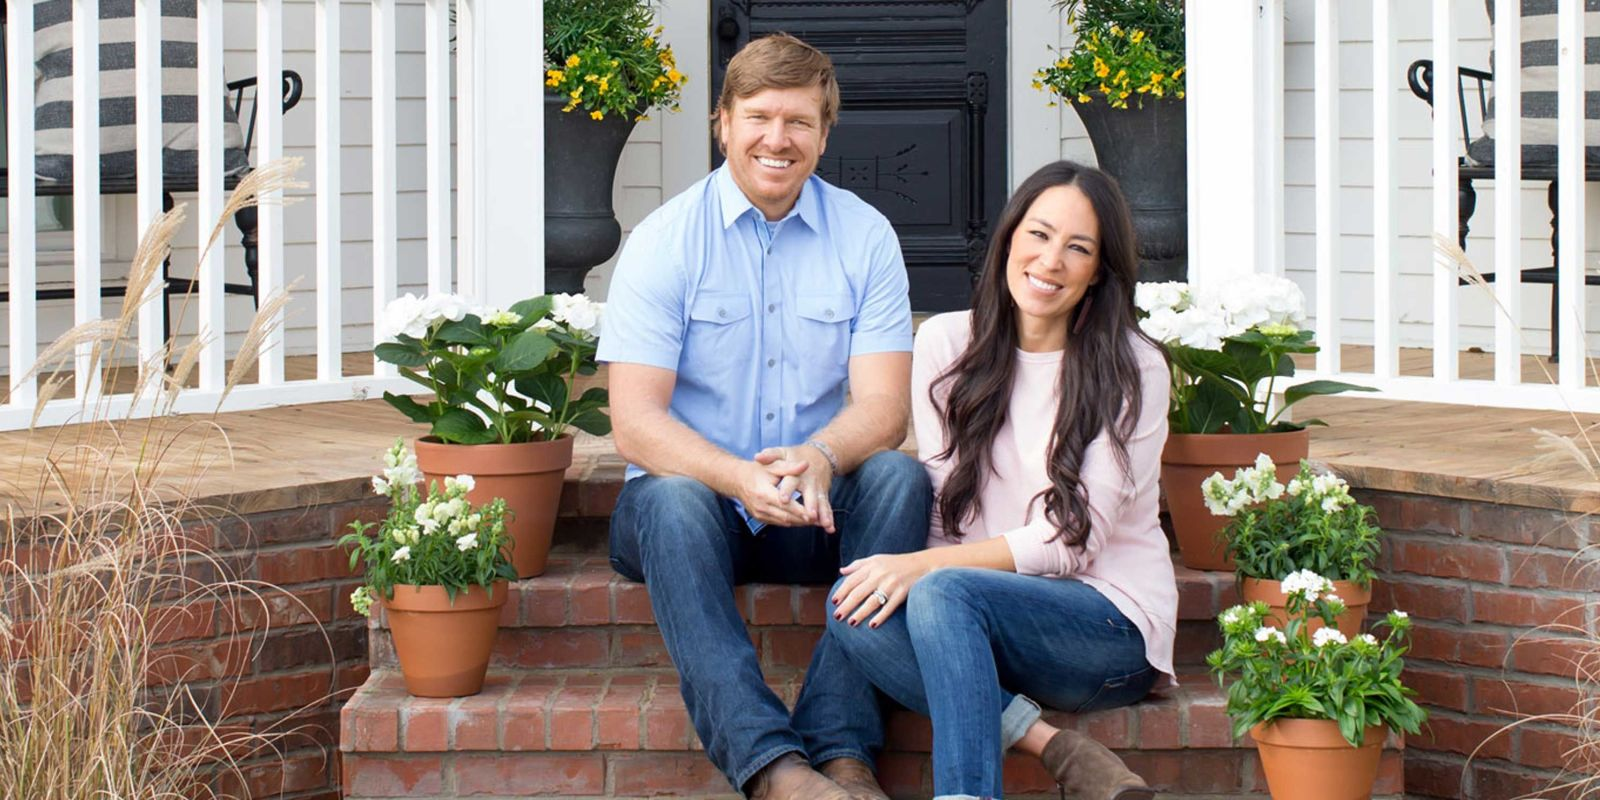 chip and joanna gaines love story how chip and joanna gaines met. Black Bedroom Furniture Sets. Home Design Ideas